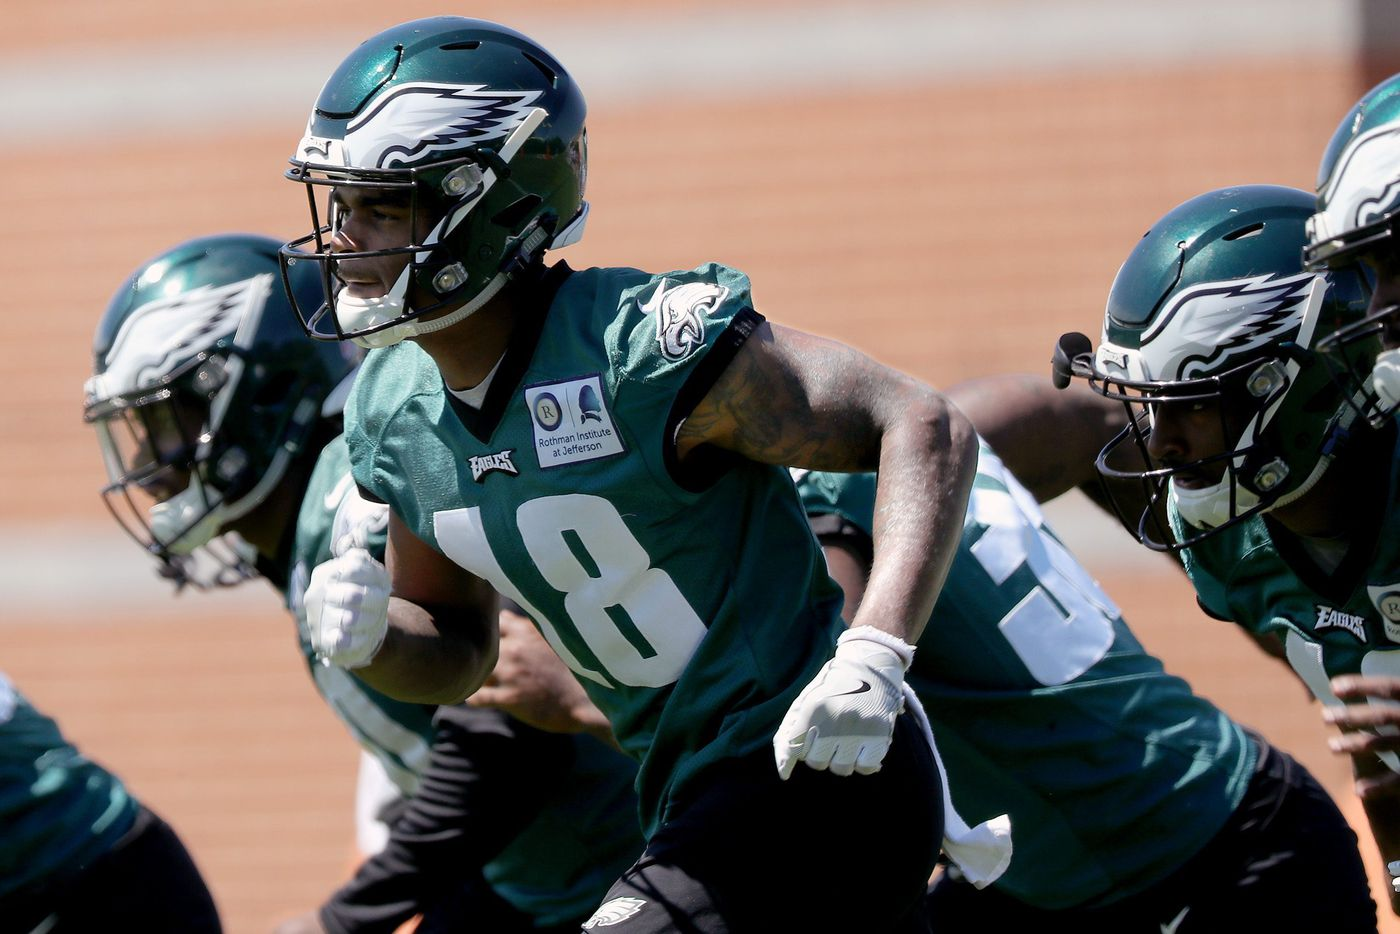 The Eagles' Shelton Gibson is sick of hearing about his potential. He's ready to produce.